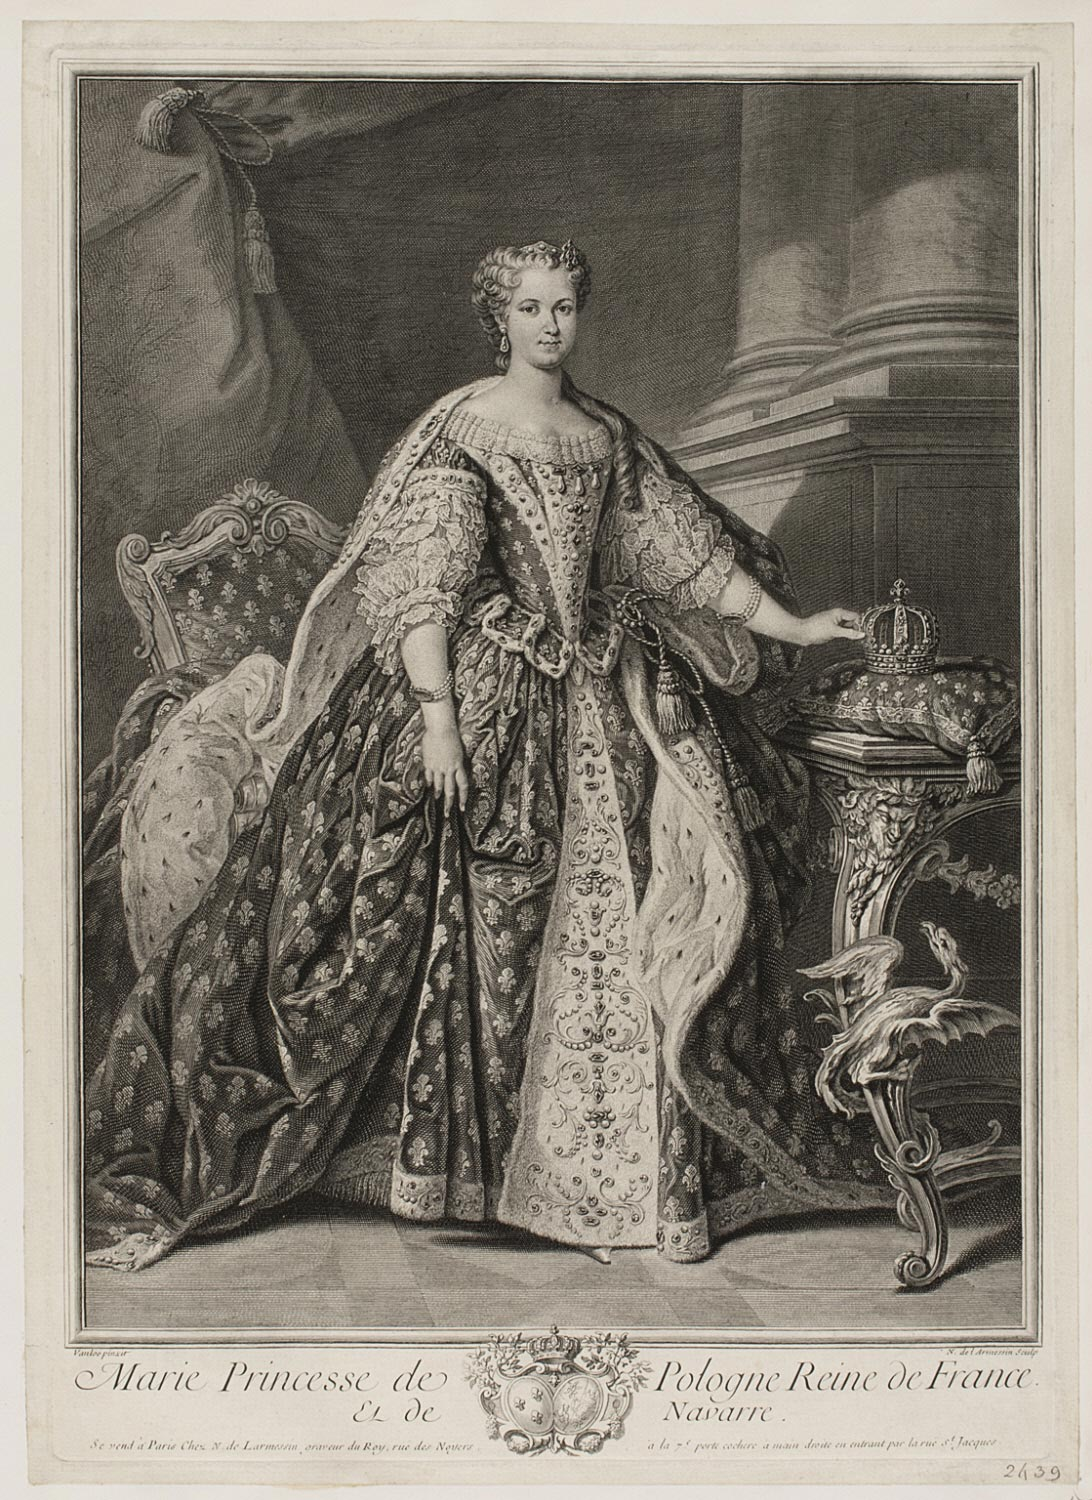 Marie Leszczinska, Princess of Poland and Queen of France and Navarre (1703 - 1768)